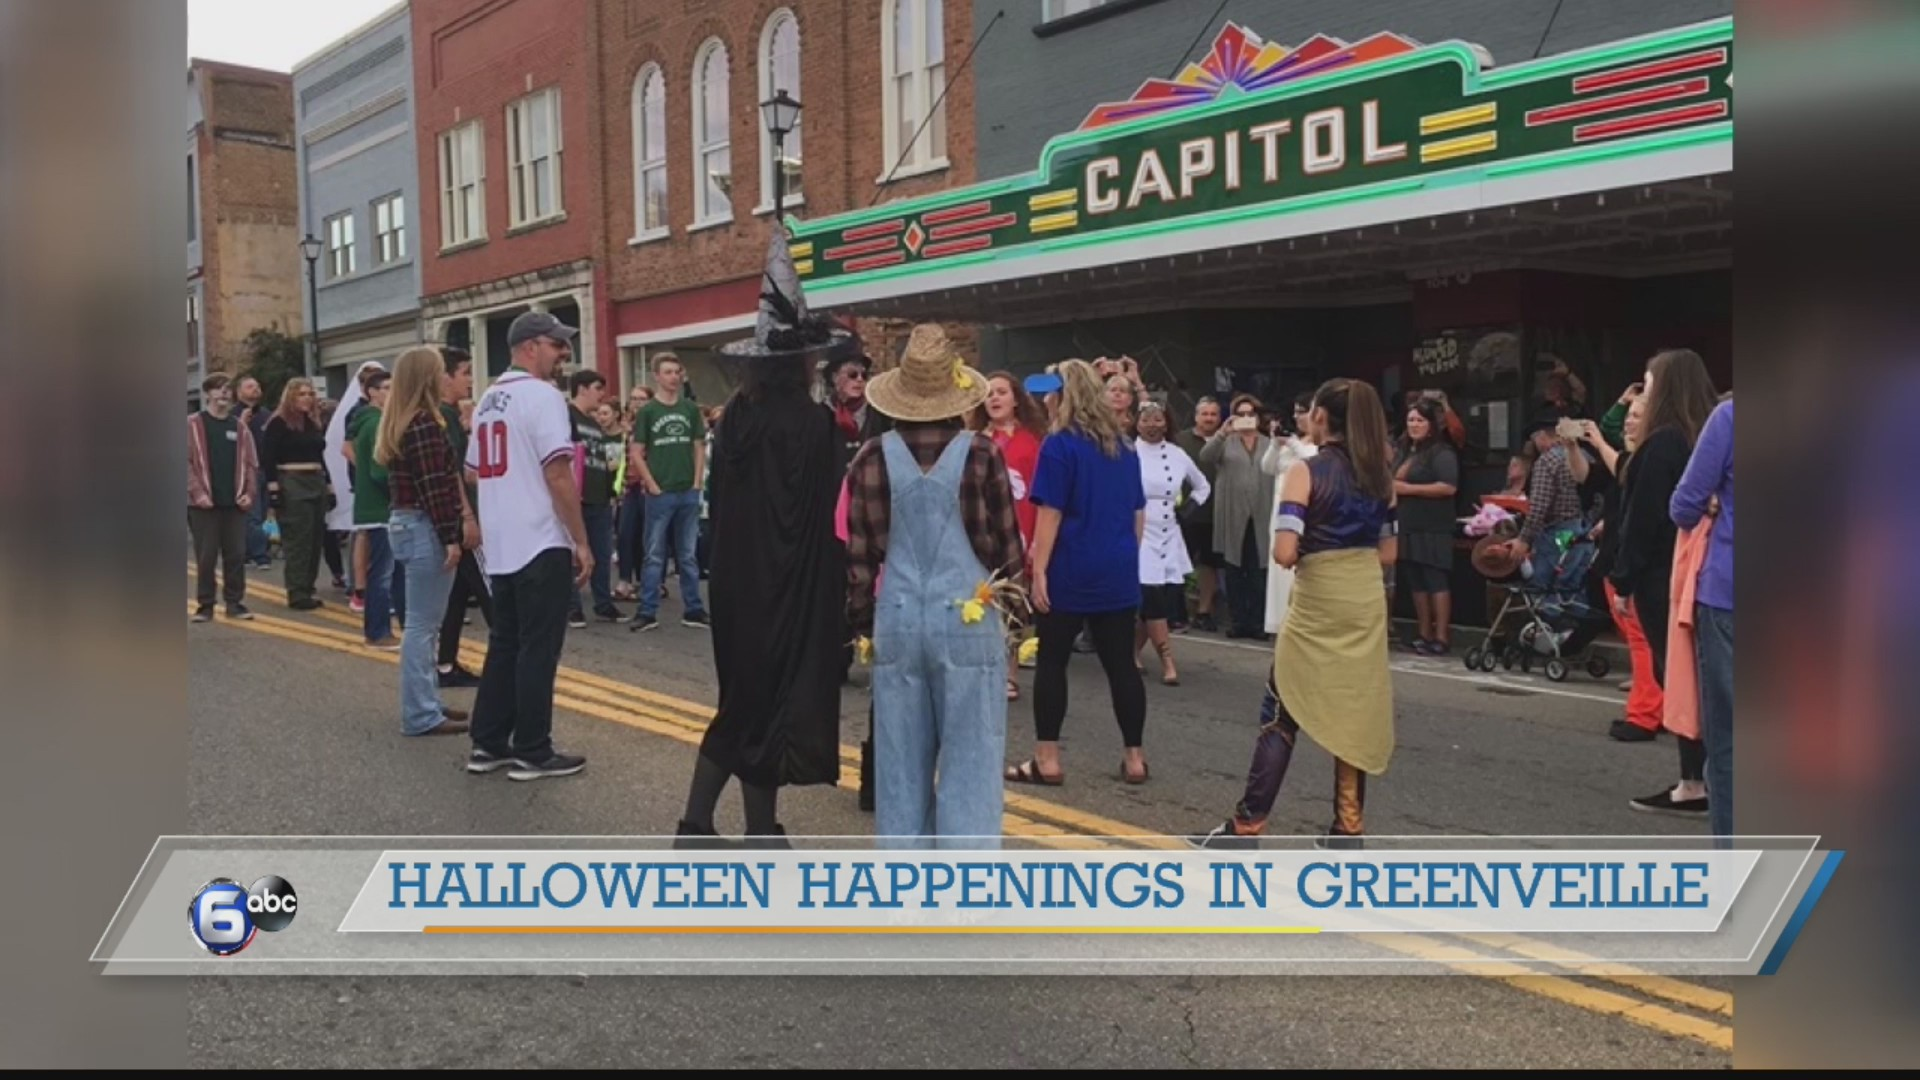 Halloween Events 2020 Greeneville Tn It's time for Halloween Happenings in Greeneville | WATE 6 On Your